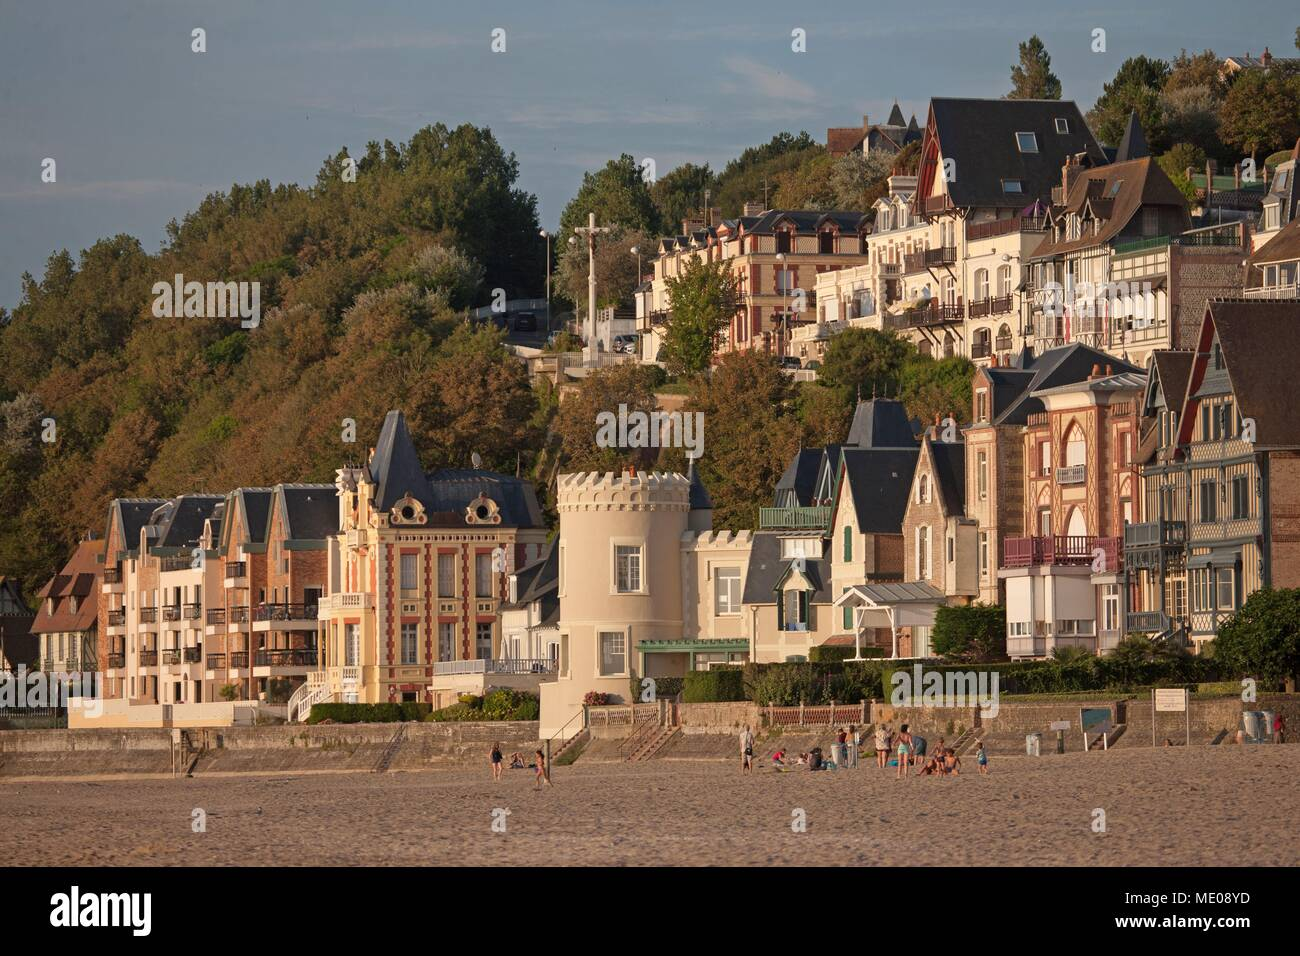 Captivating France, Normandy Region, Former Lower Normandy, Pays Du0027Auge, Trouville Sur  Mer, Villas On The Seafront, Cliff And Trouville Heights, Tour Malakoff